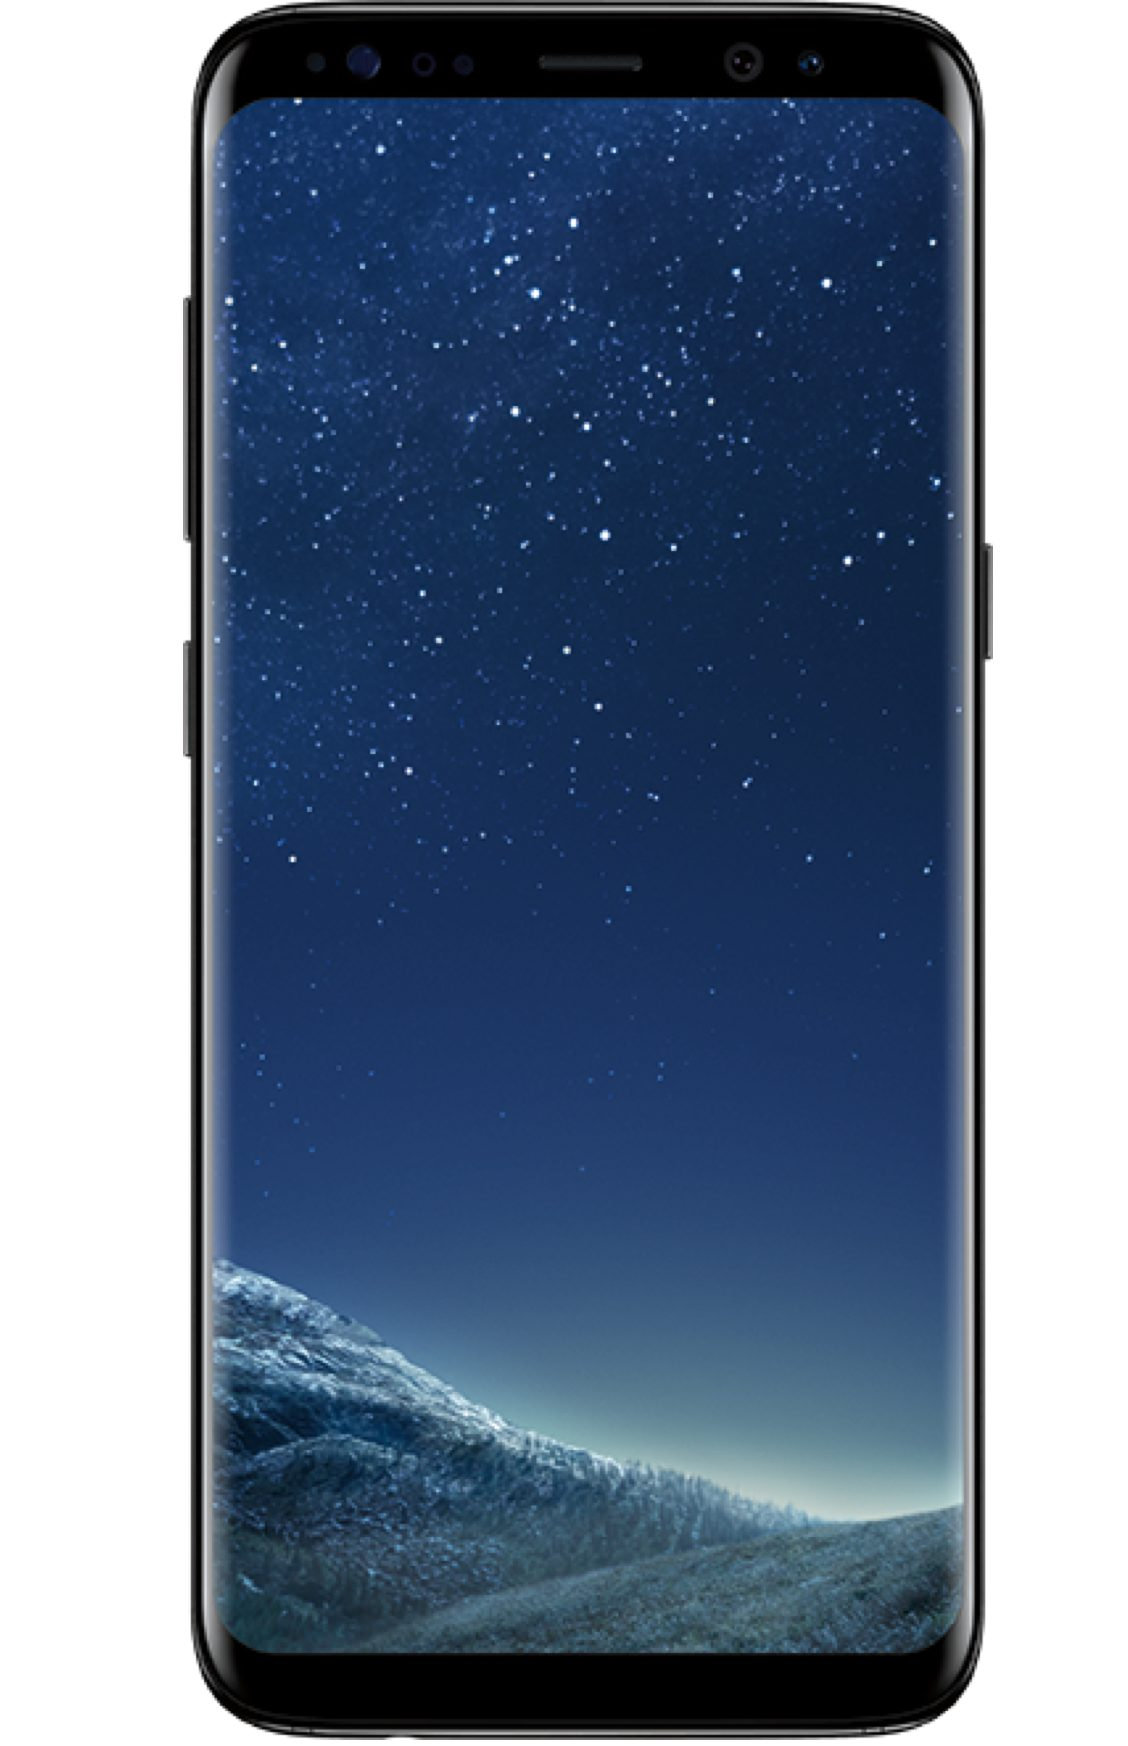 47b987d3552 Samsung Galaxy S8 Pre-Owned - Features